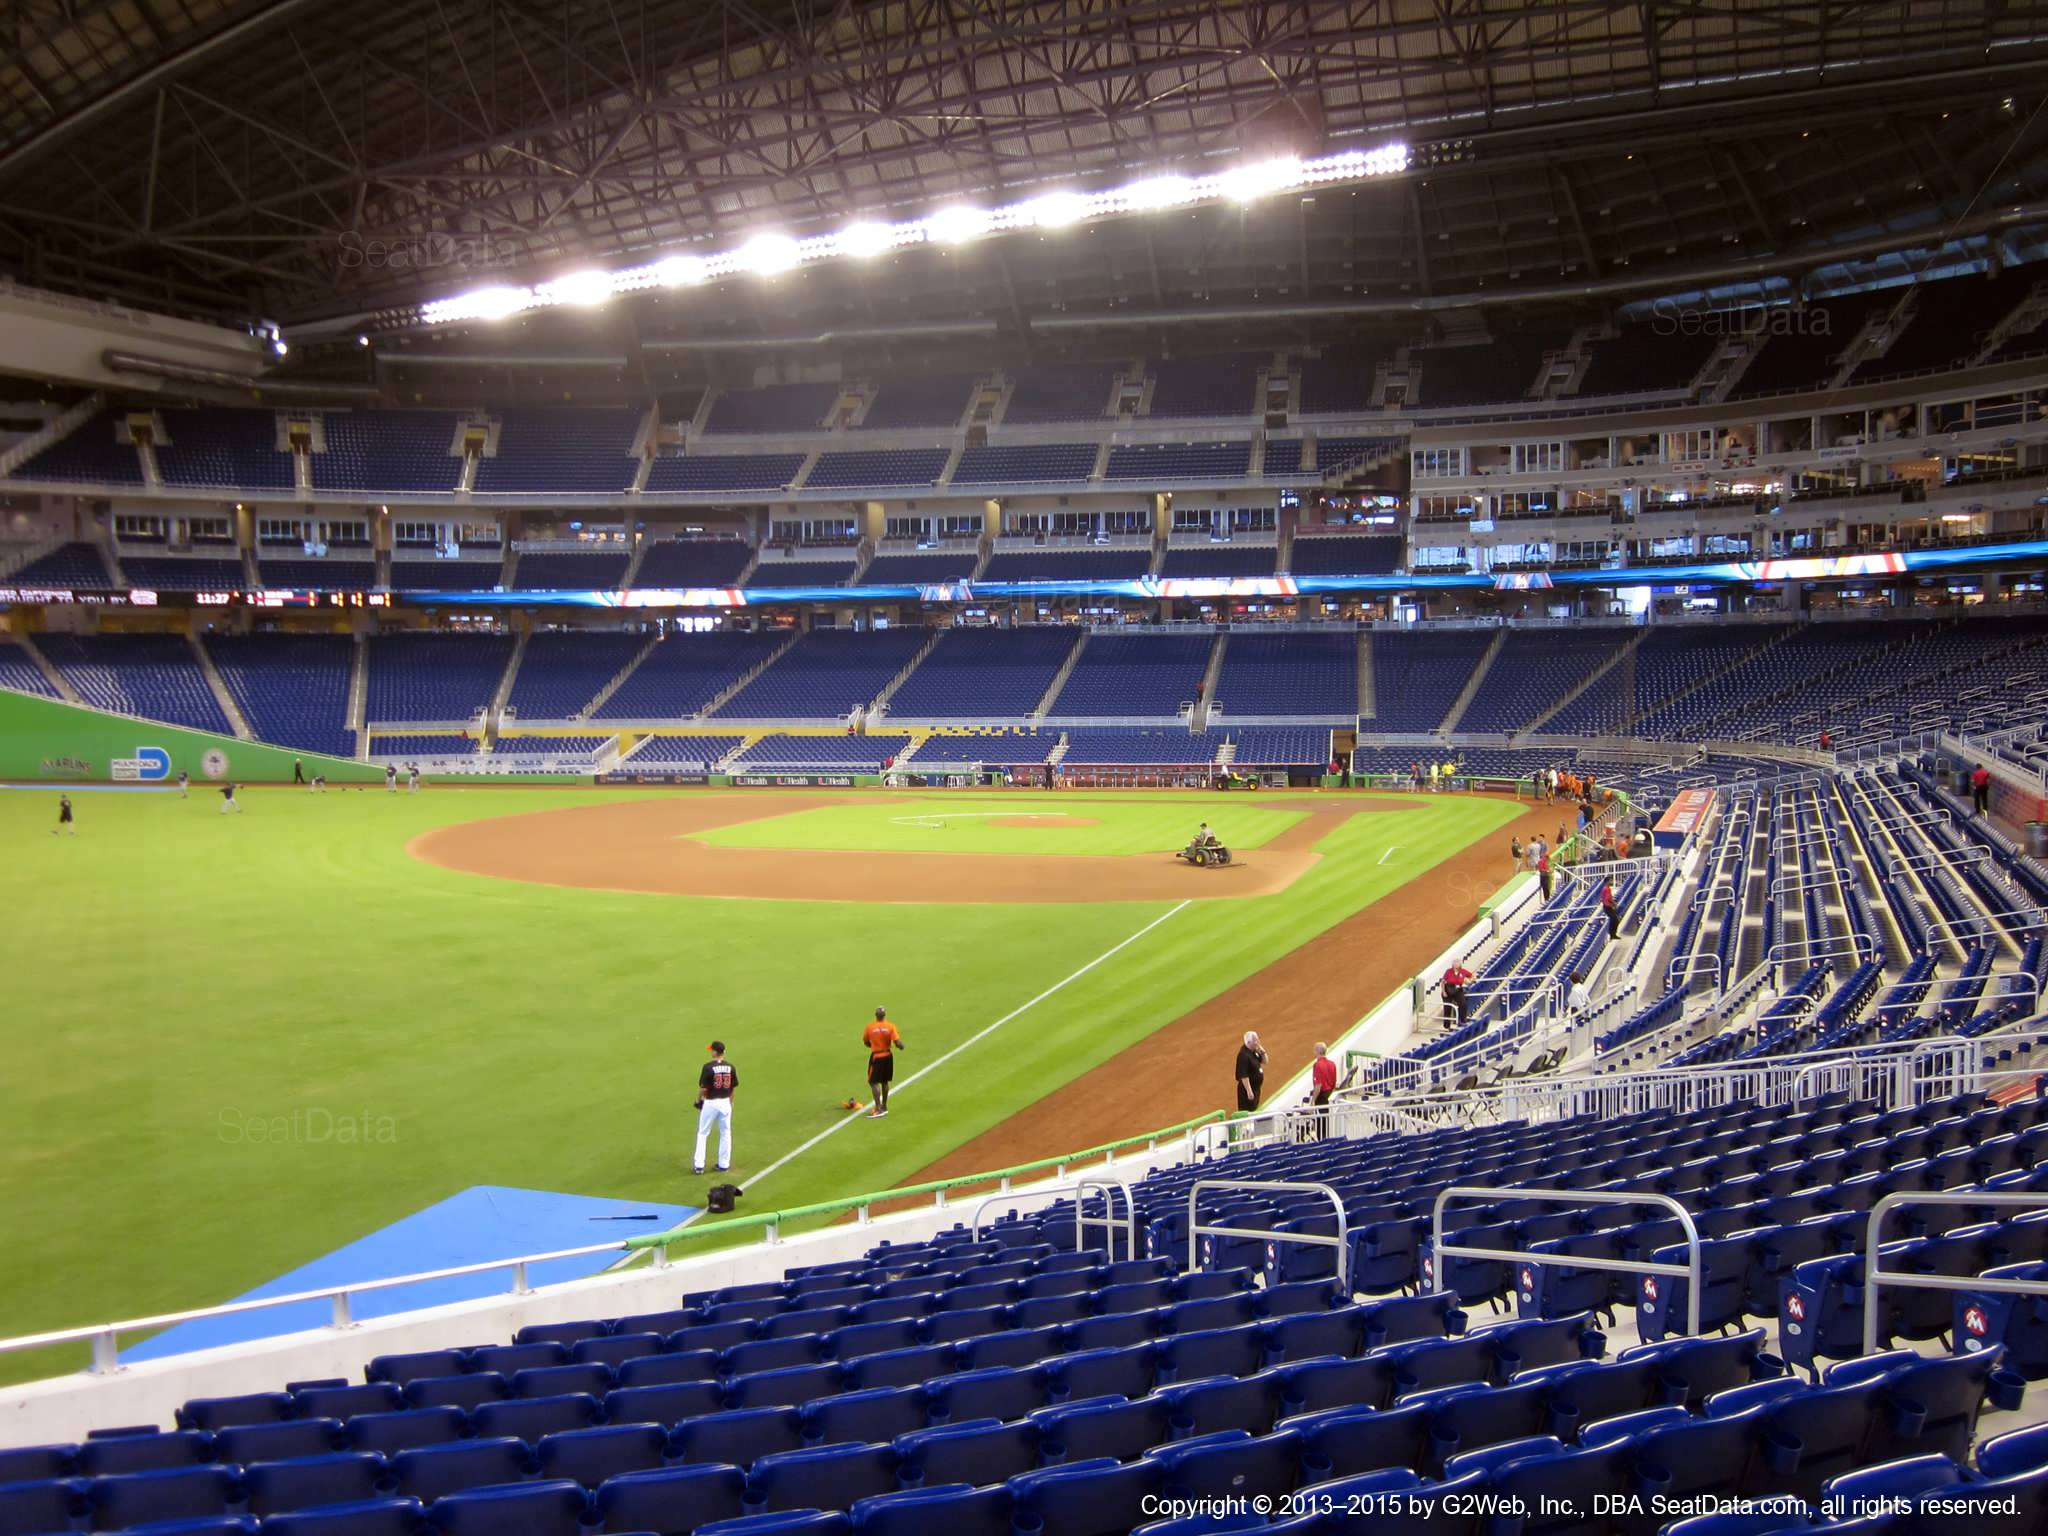 Seat view from section 27 at Marlins Park, home of the Miami Marlins